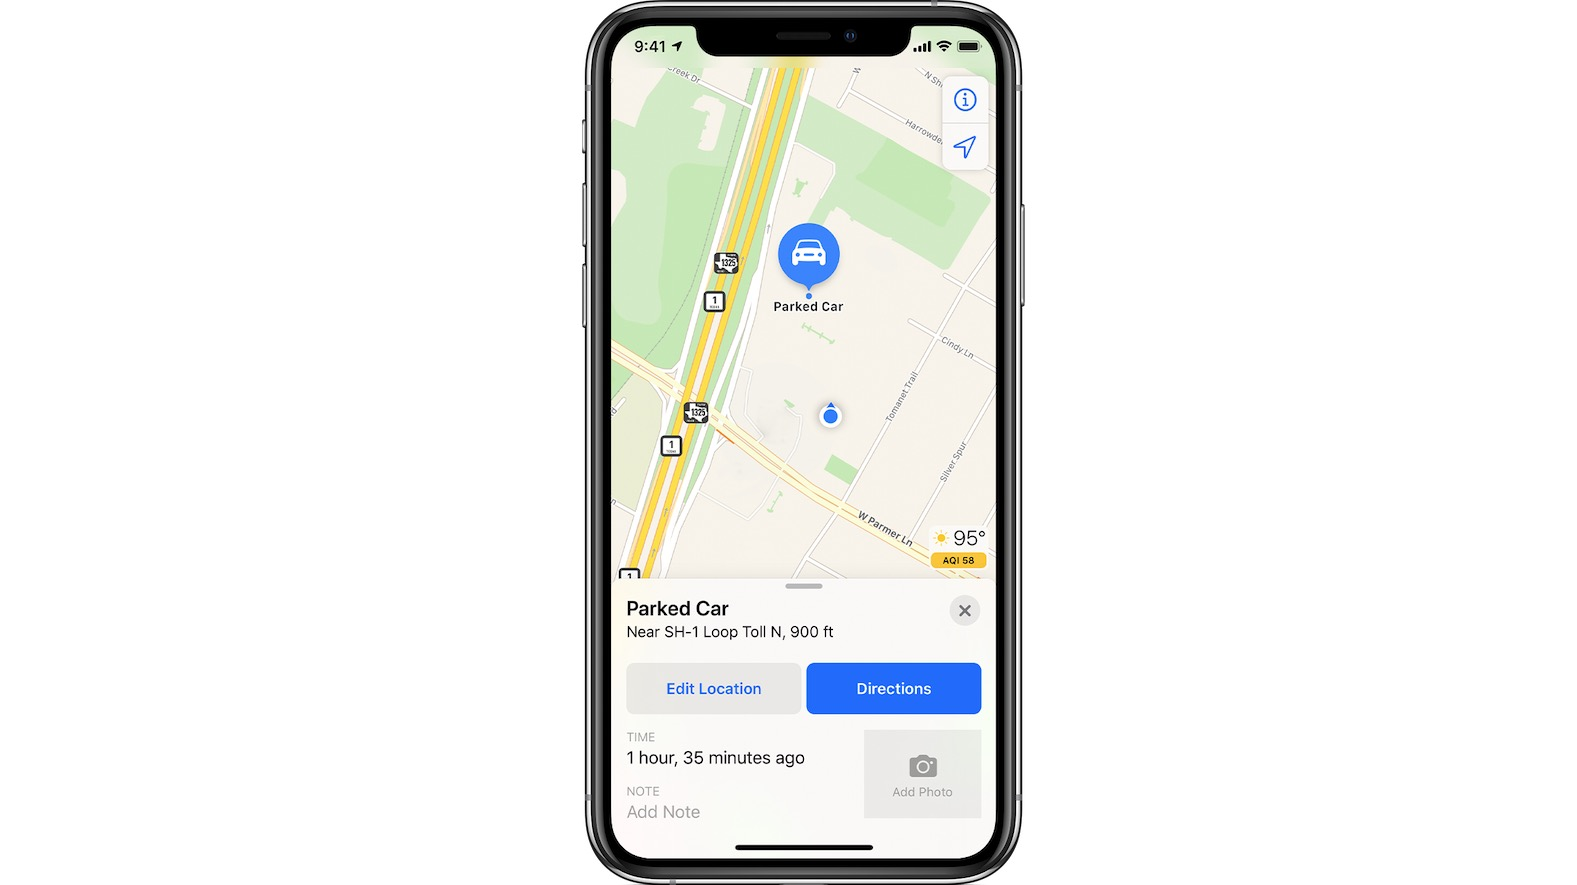 Find Parked Car in iOS 13